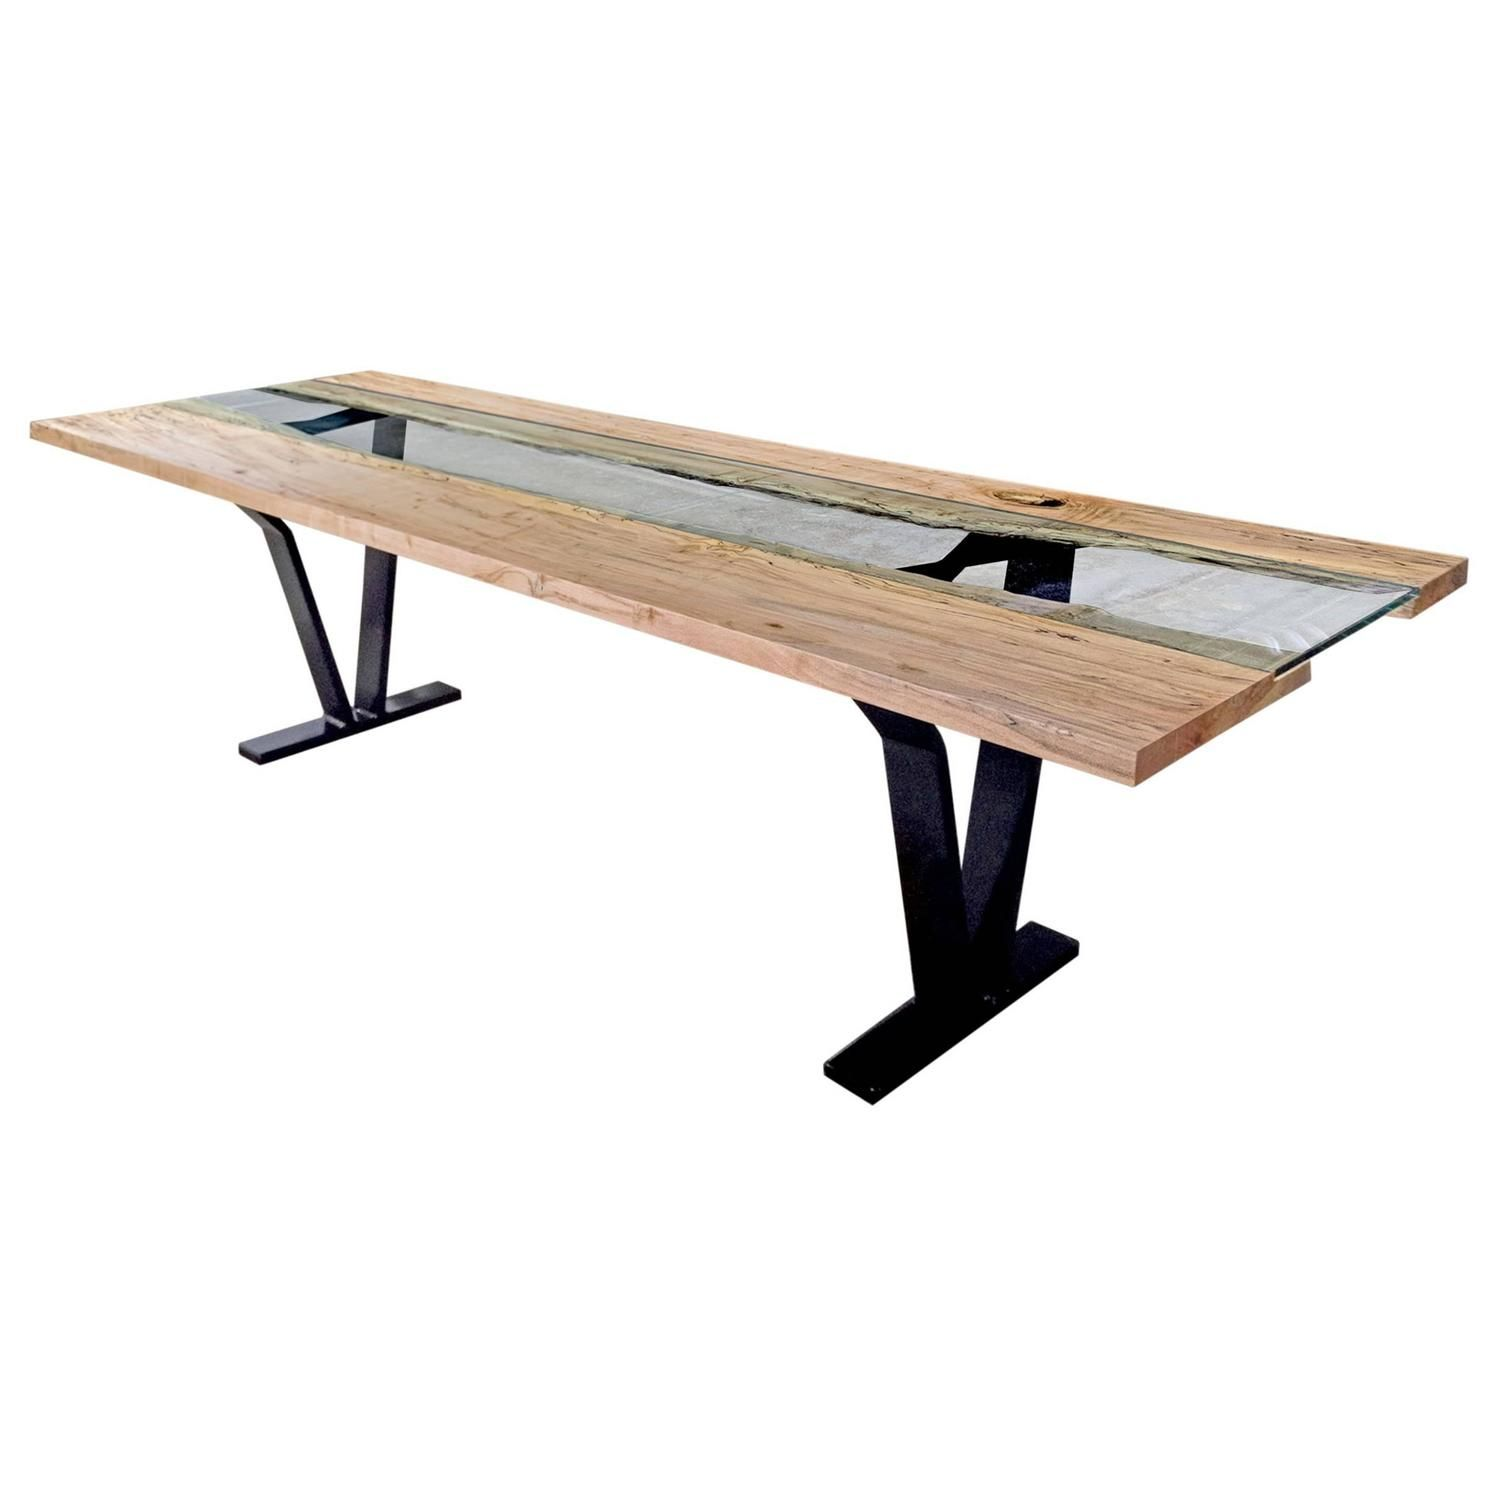 Sentient Dining Room Table Dining Table Colorado 84 Live Edge Ambrosia Slab Blackened Legs American Organic Modern Steel Glass Maple Dining Room Table Table Home Decor Dyi